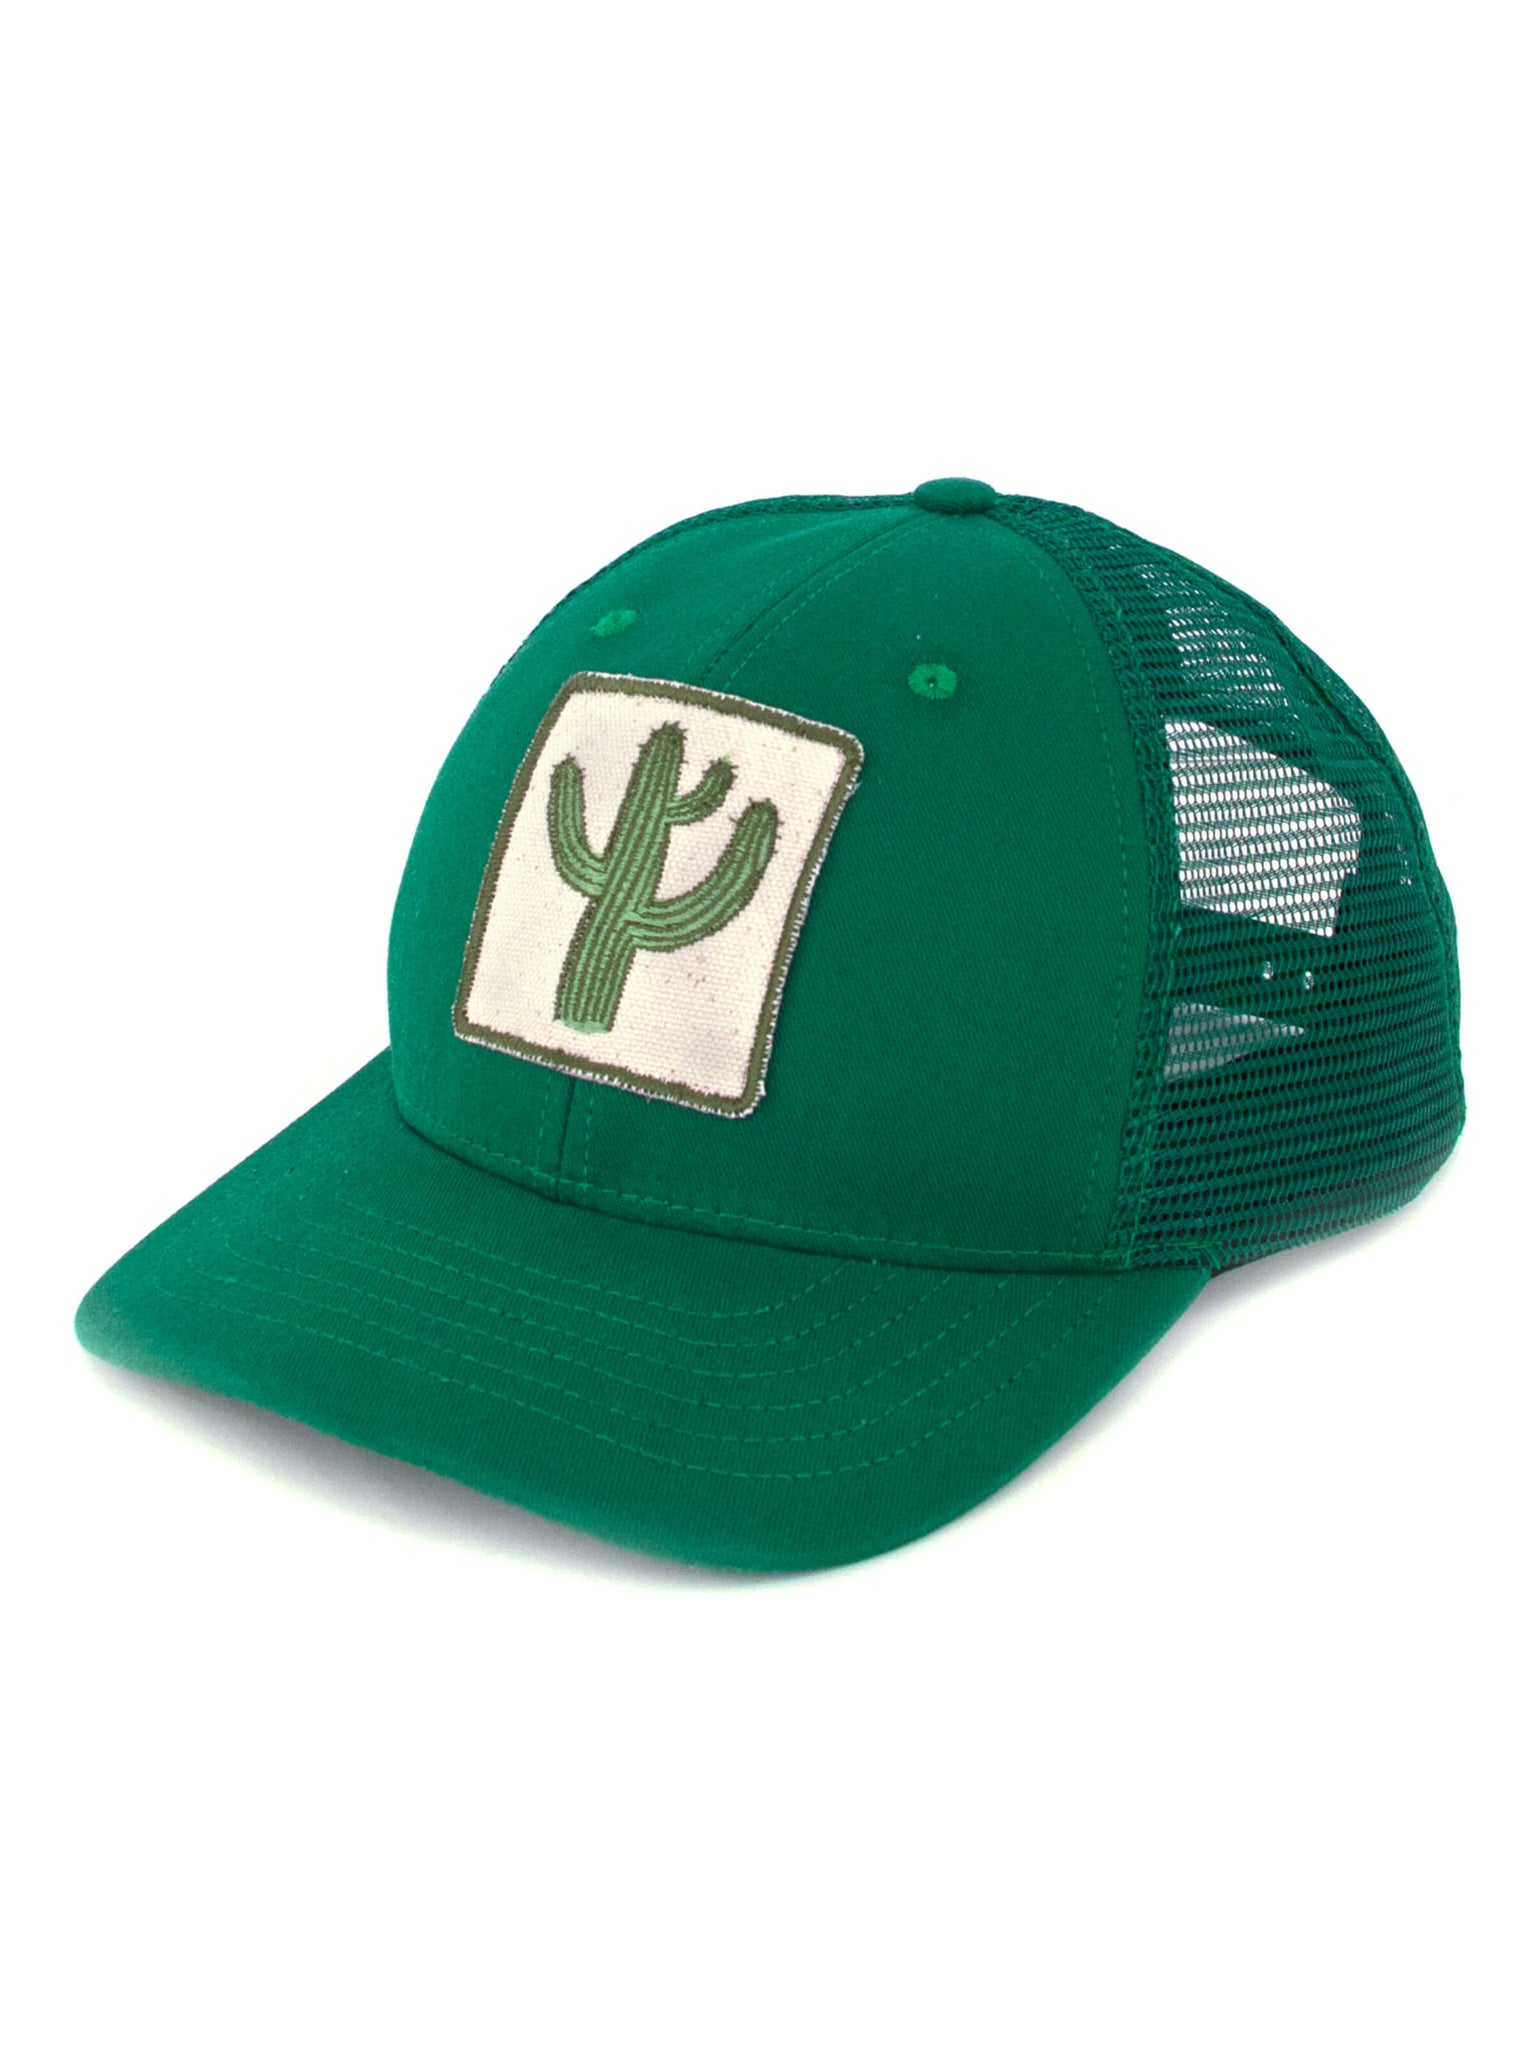 Cactus Patch Trucker Hat